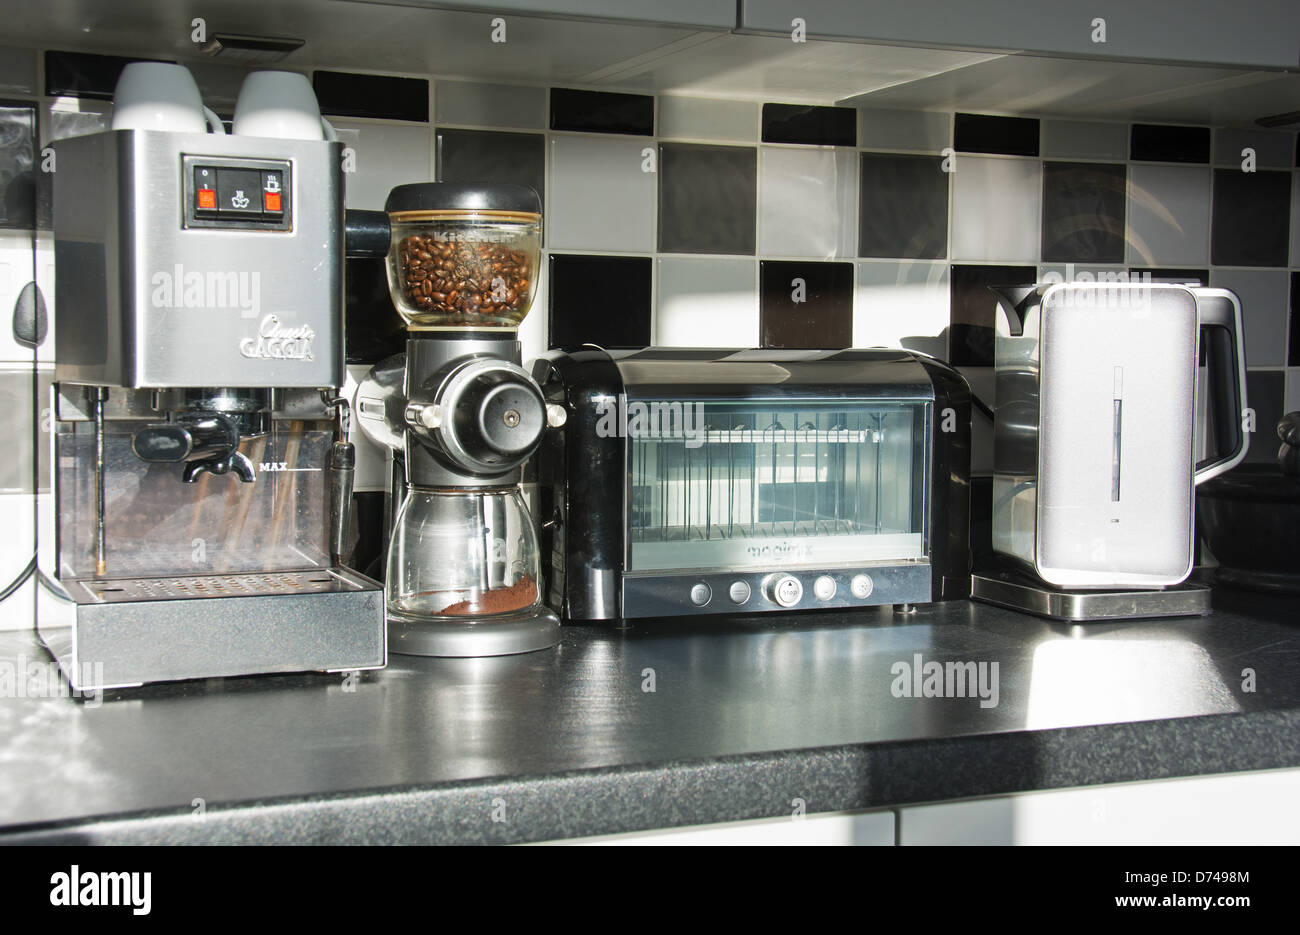 Uncategorized Modern Kitchen Appliances modern kitchen appliances stock photos coffee machine bean grinder toaster kettle in a